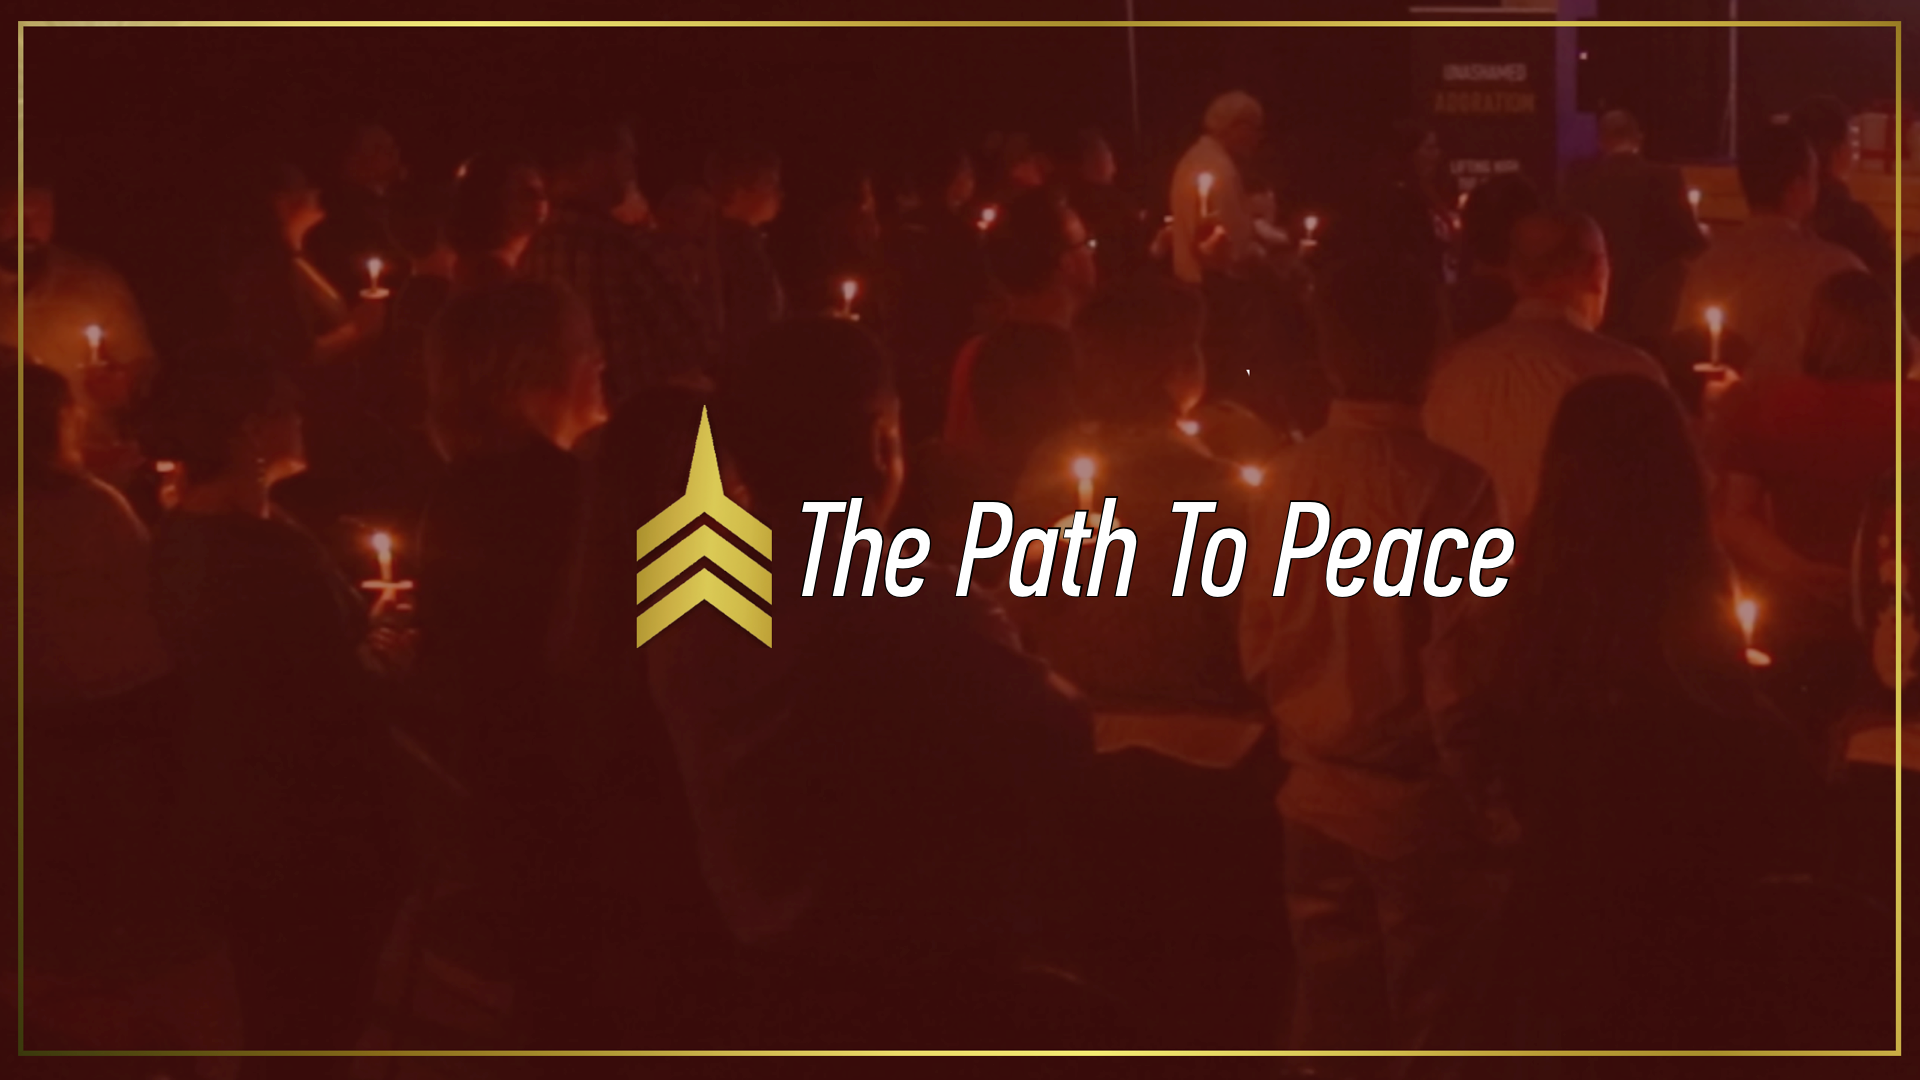 20161218 The Path To Peace.png